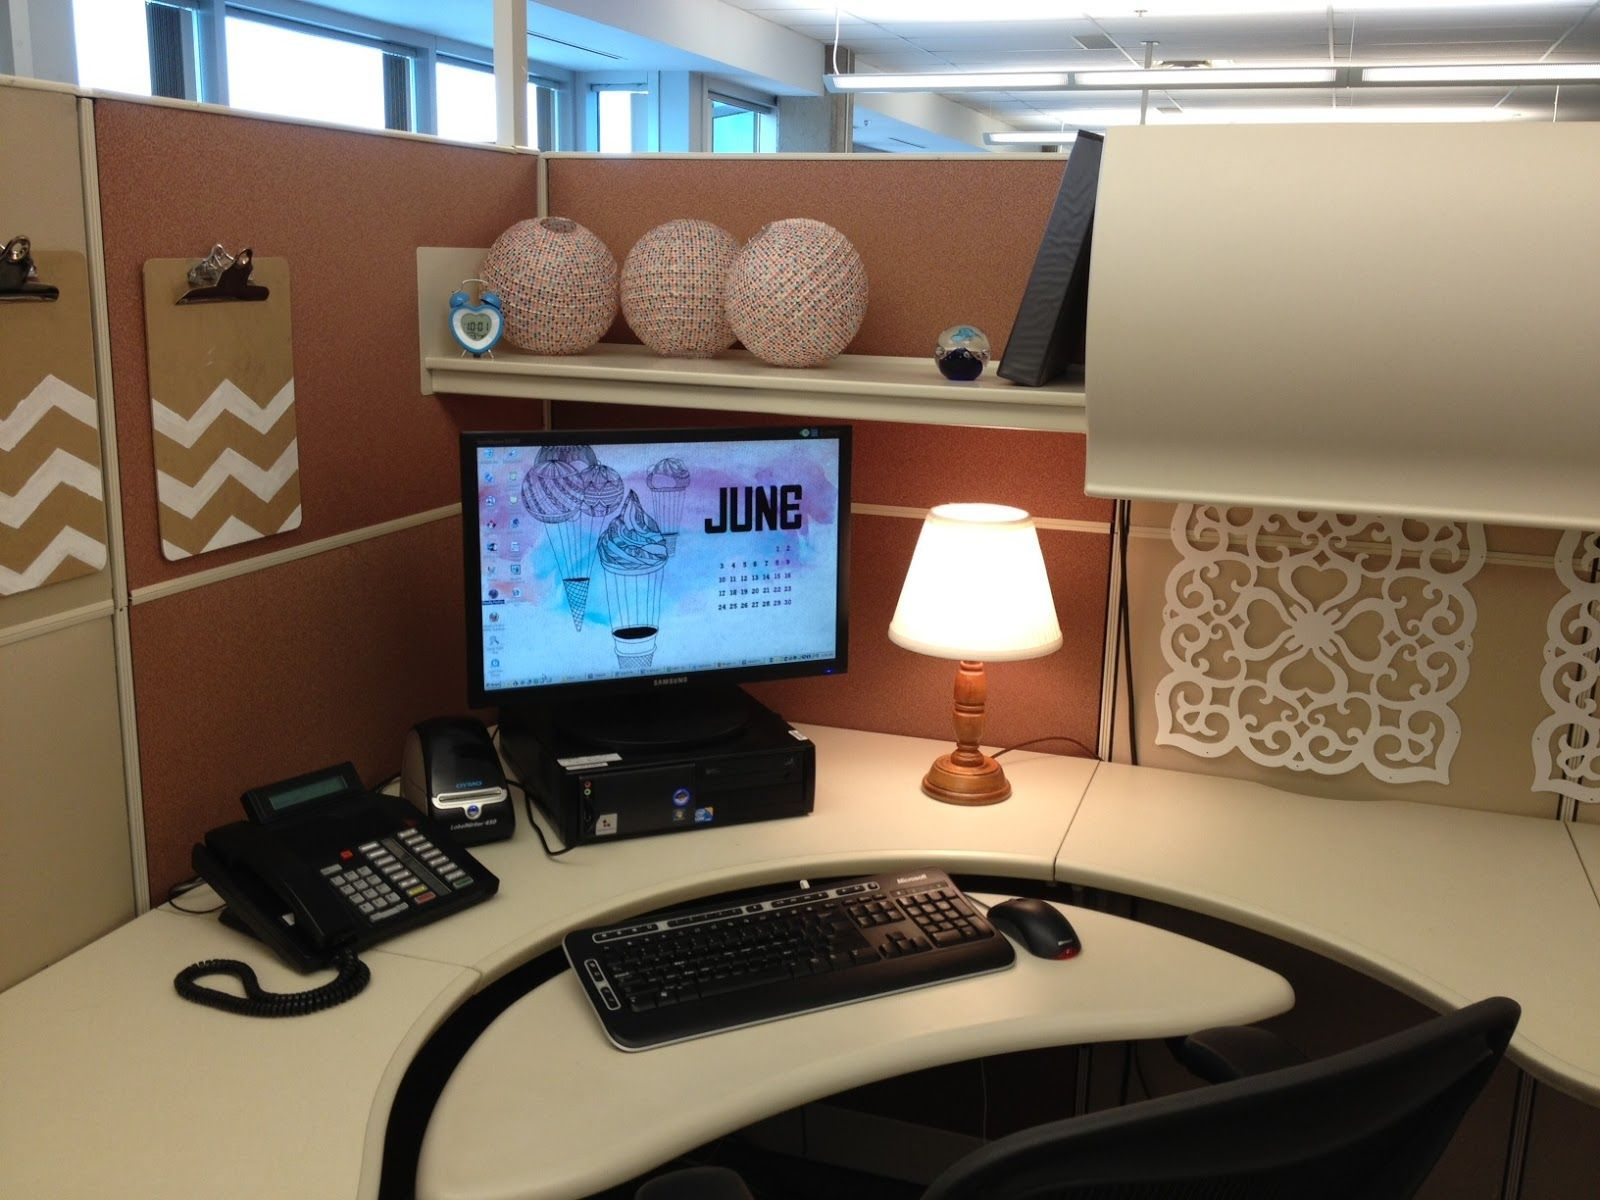 Cubicle Decorating Ideas Classy 20 Cubicle Decor Ideas To Make Your Office Style Work As Hard As Decorating Design